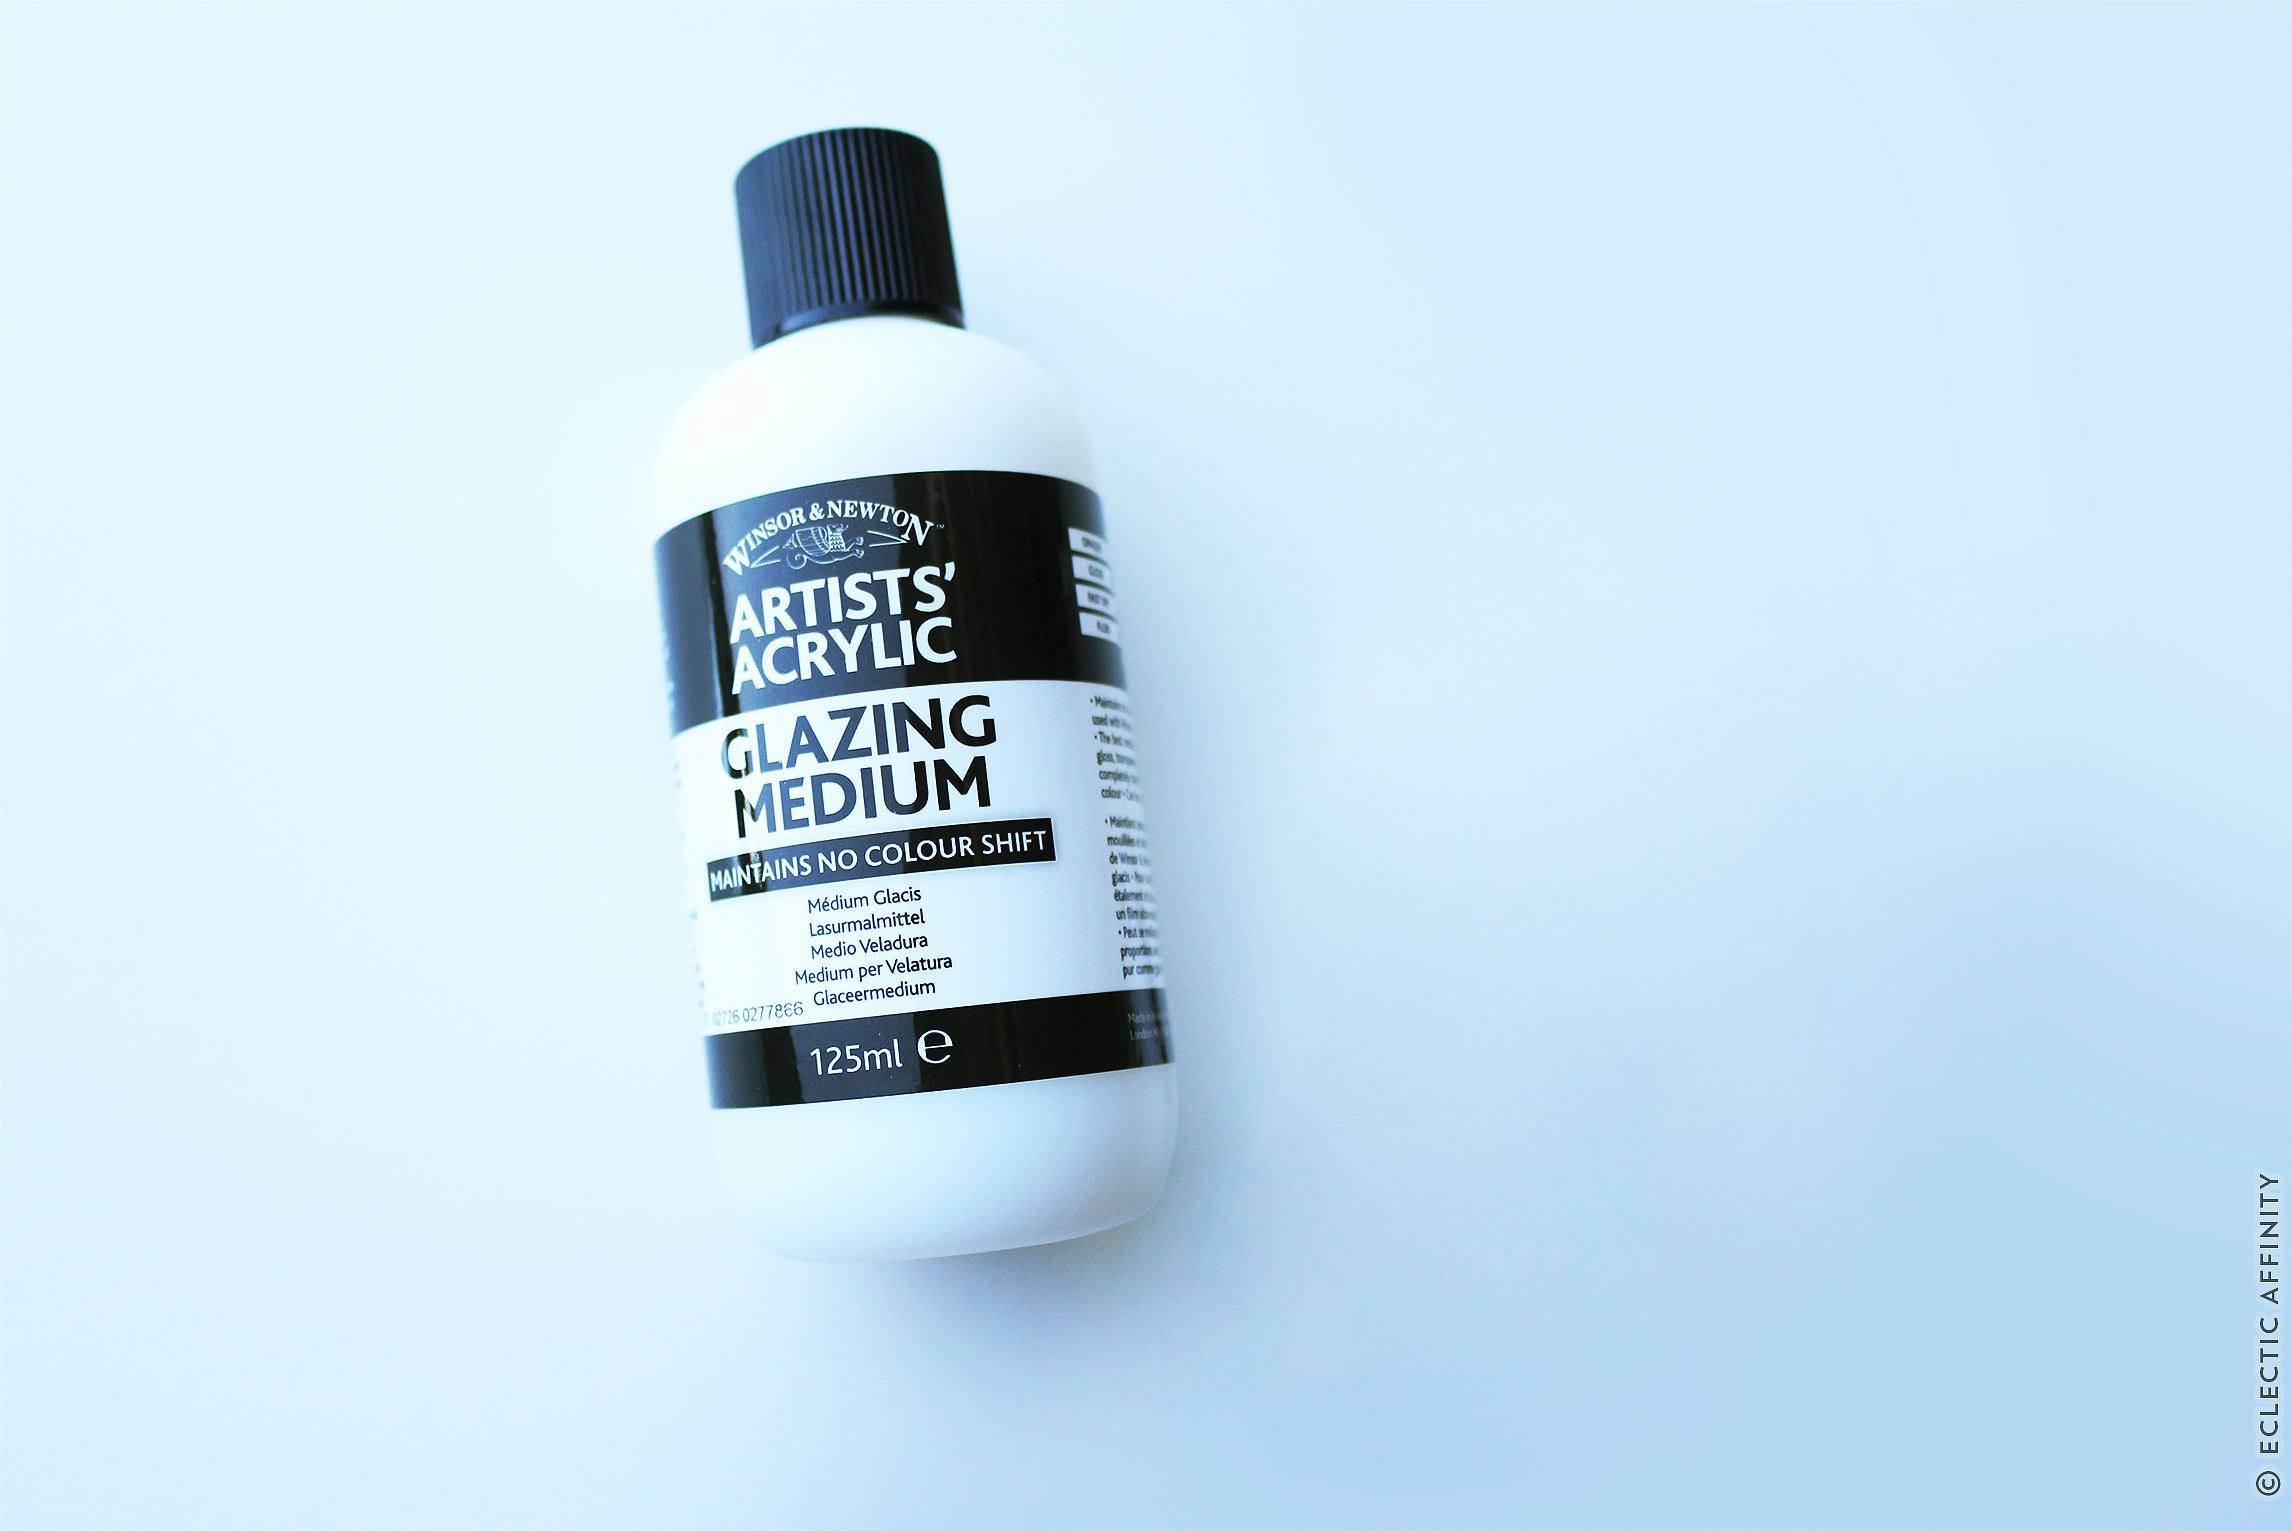 glazing medium for acrylic paint | image © Charm Design Studio, LLC.